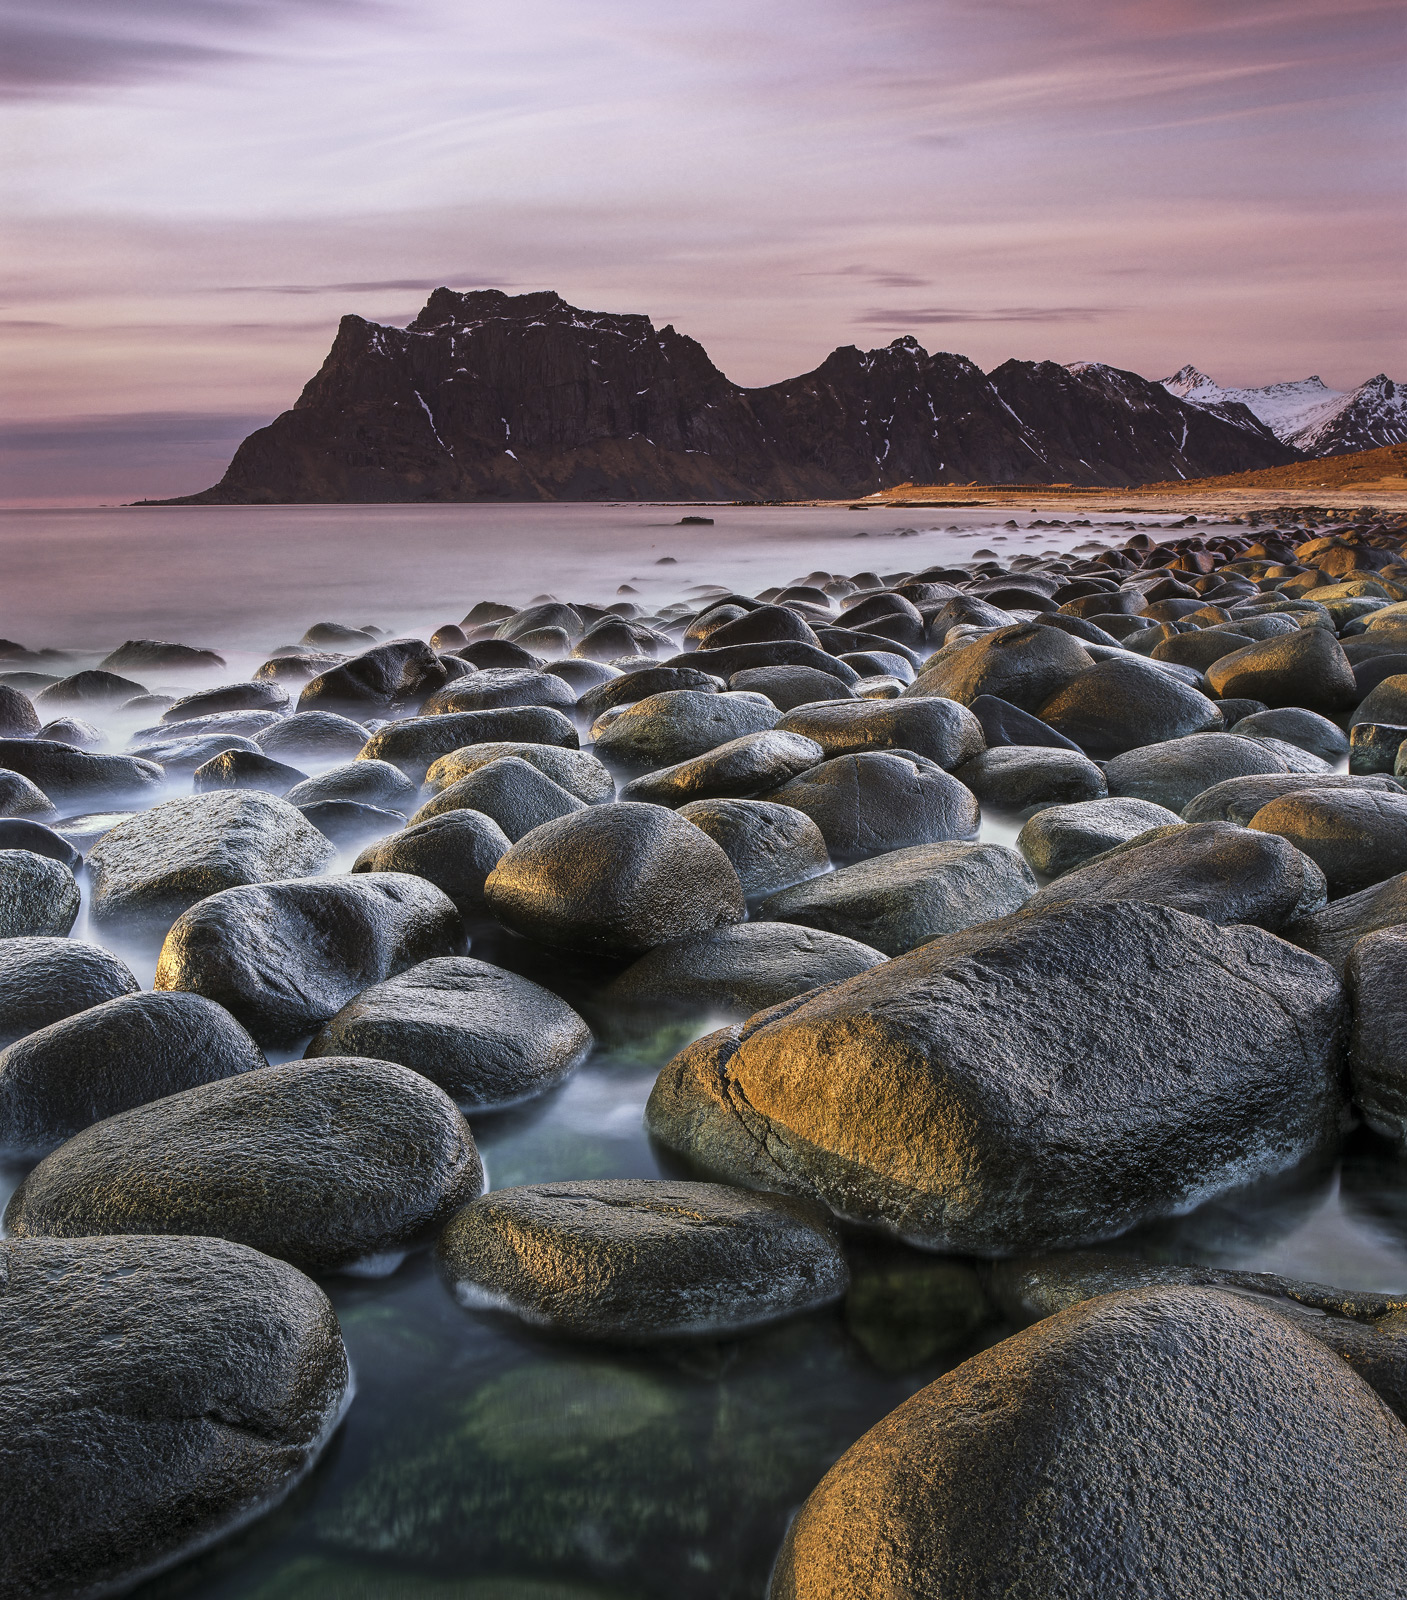 With its giant polished and rounded black boulders Uttakliev's beach proves an irresistible draw. I found myself having...